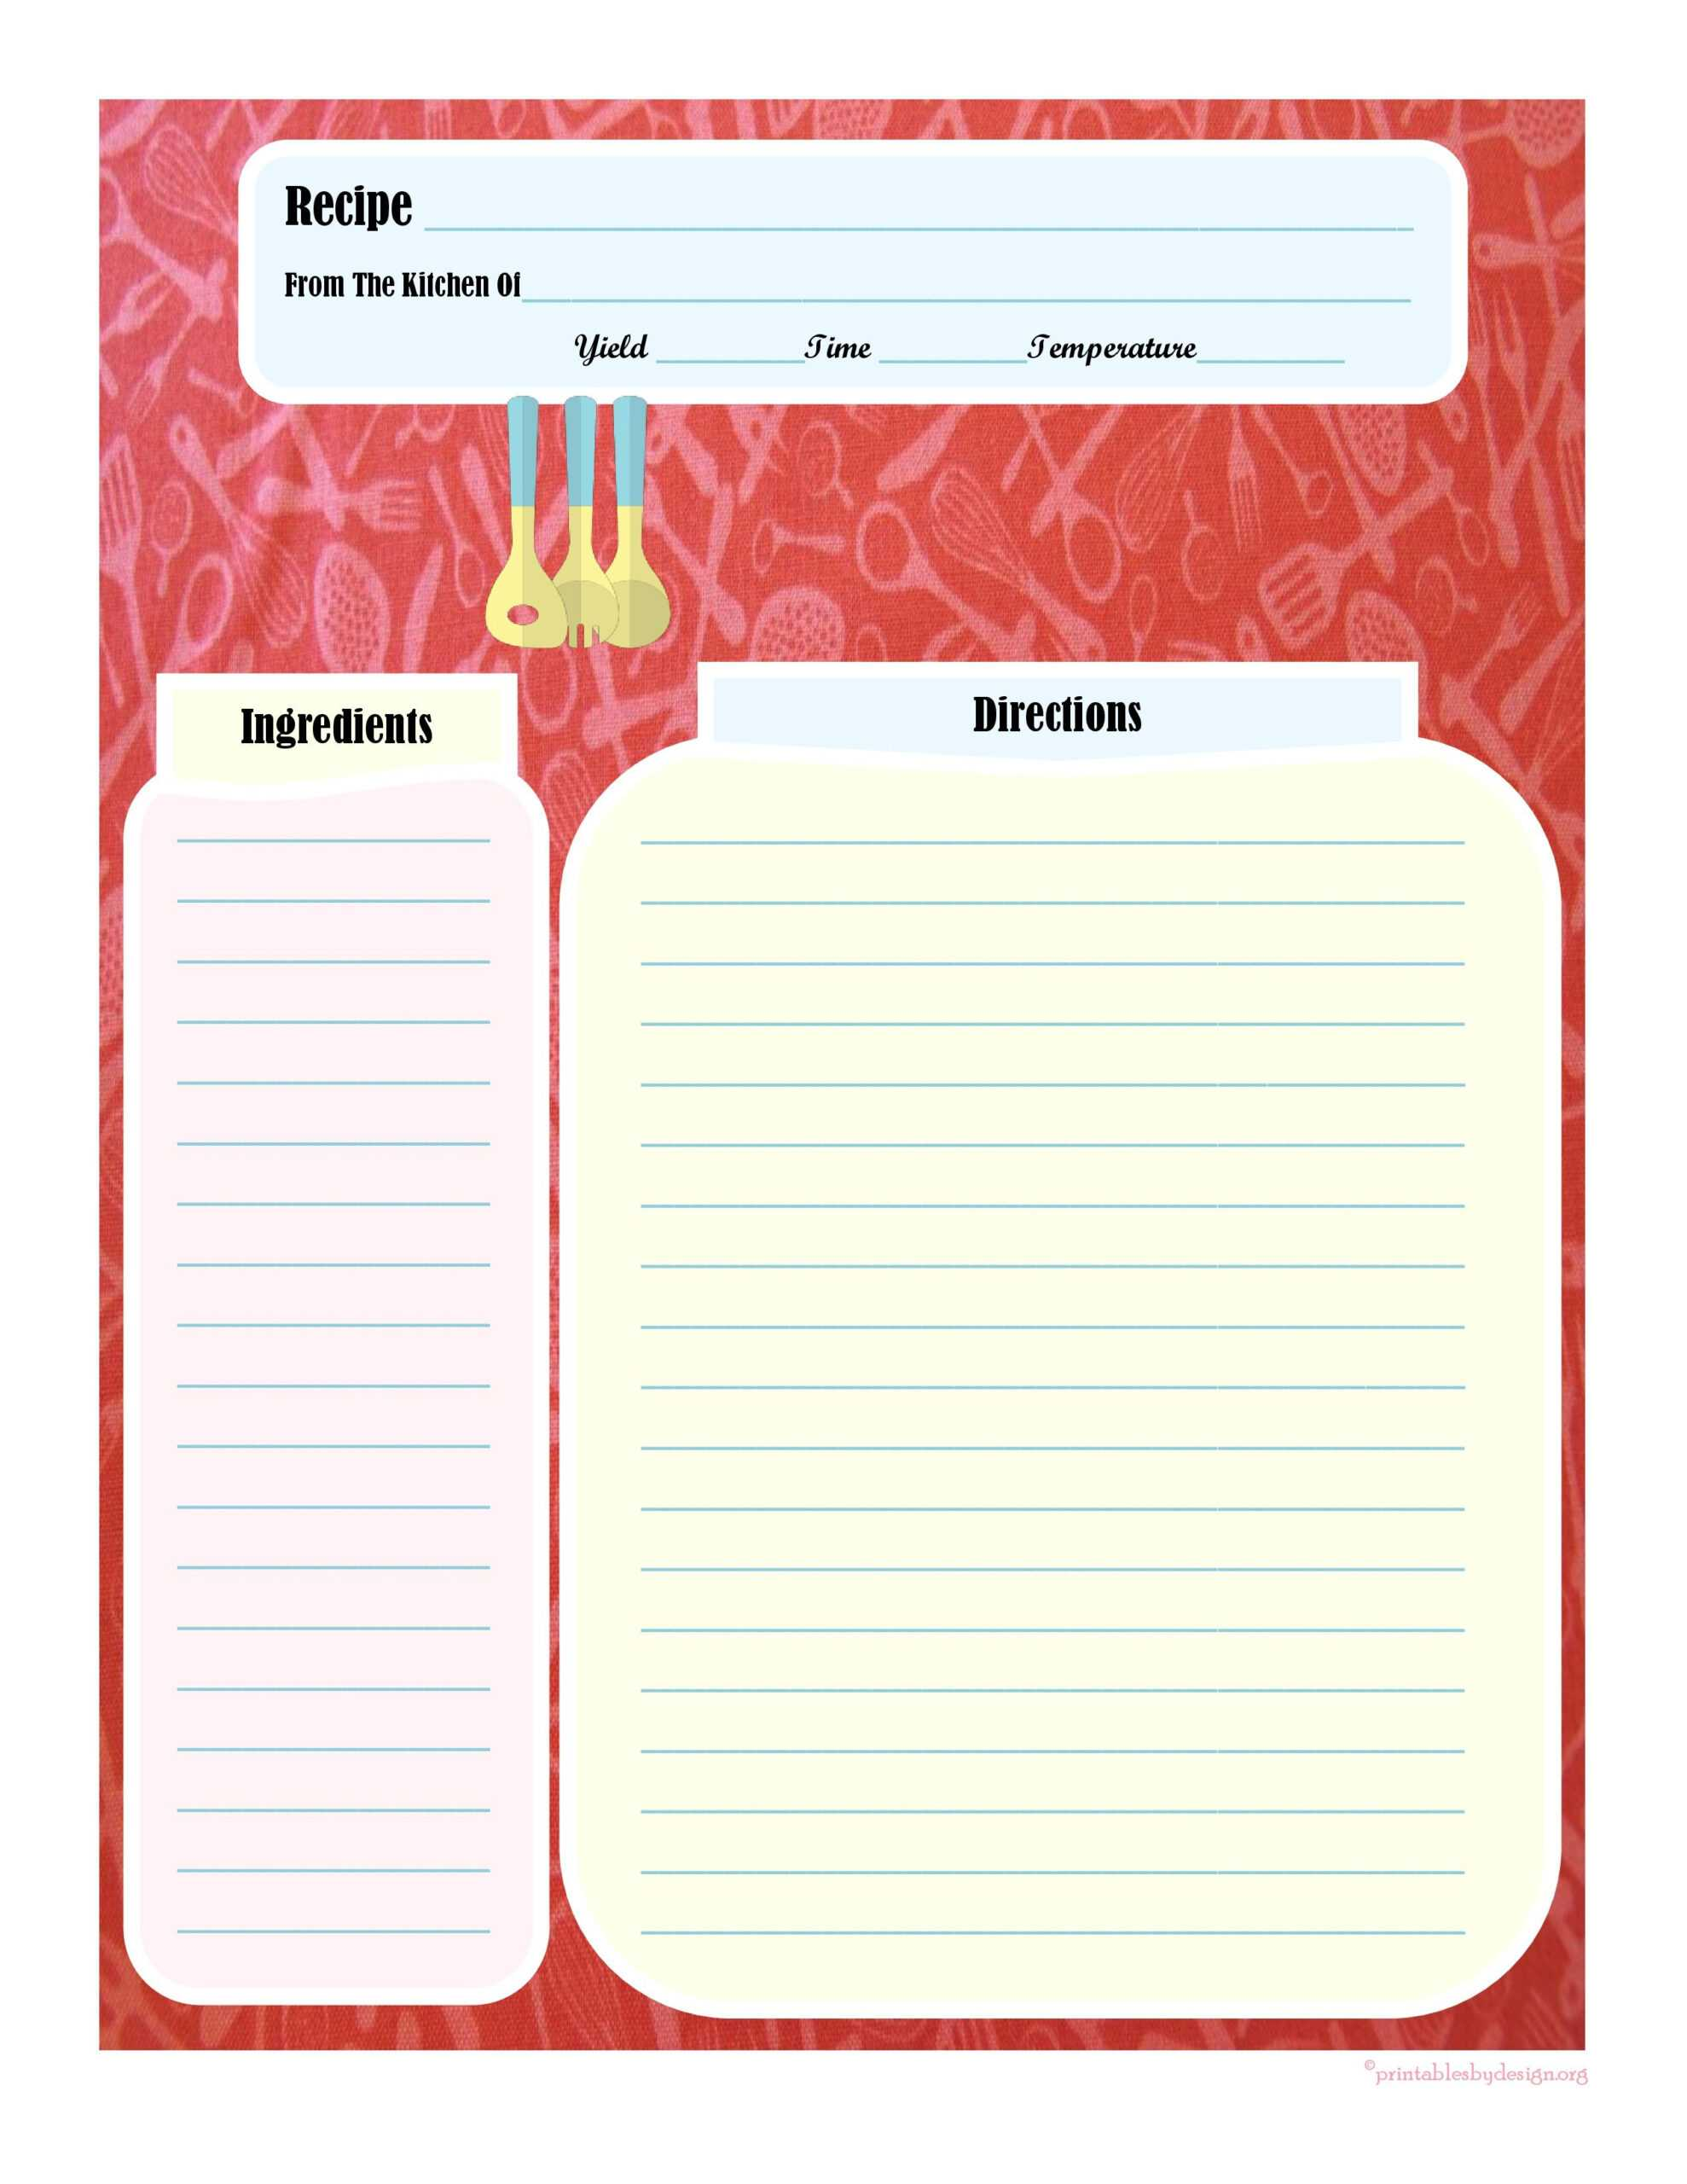 008 Template Ideas Fillable Recipe Card Impressive Free For Pertaining To Fillable Recipe Card Template